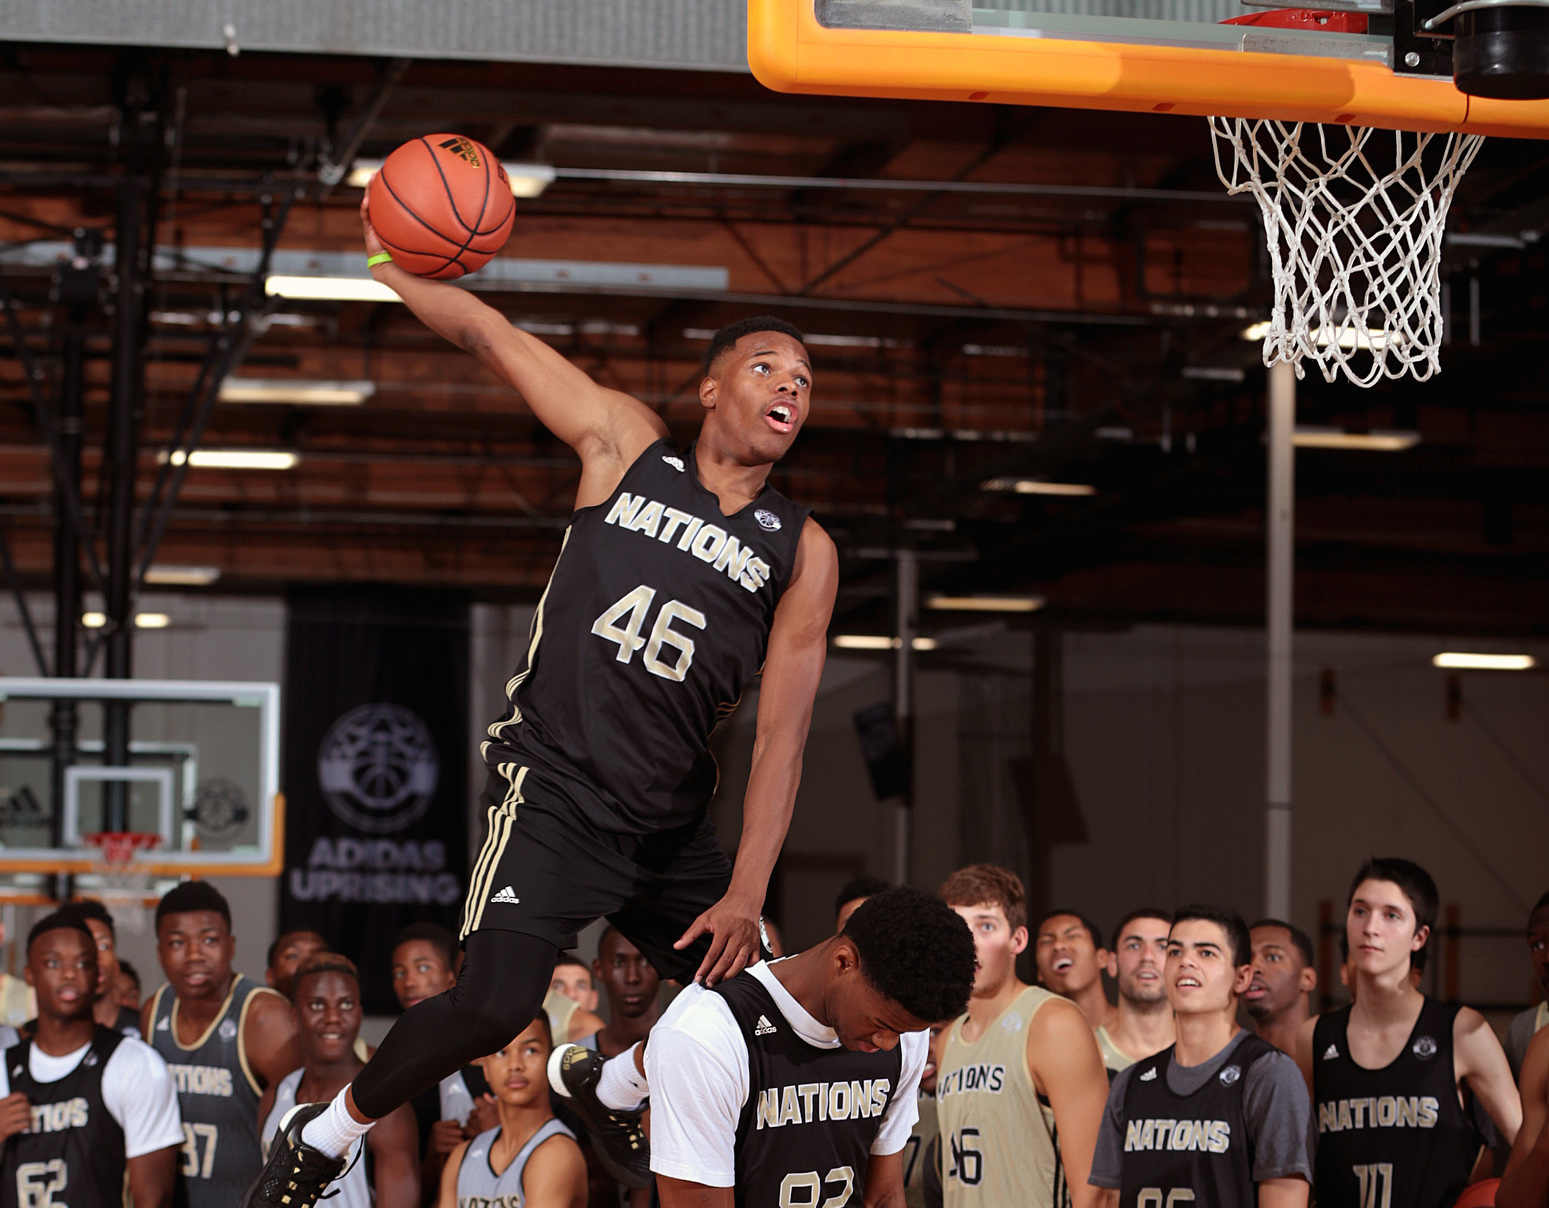 Basketball Players: The 10 Best NBA Prospects In High School Basketball